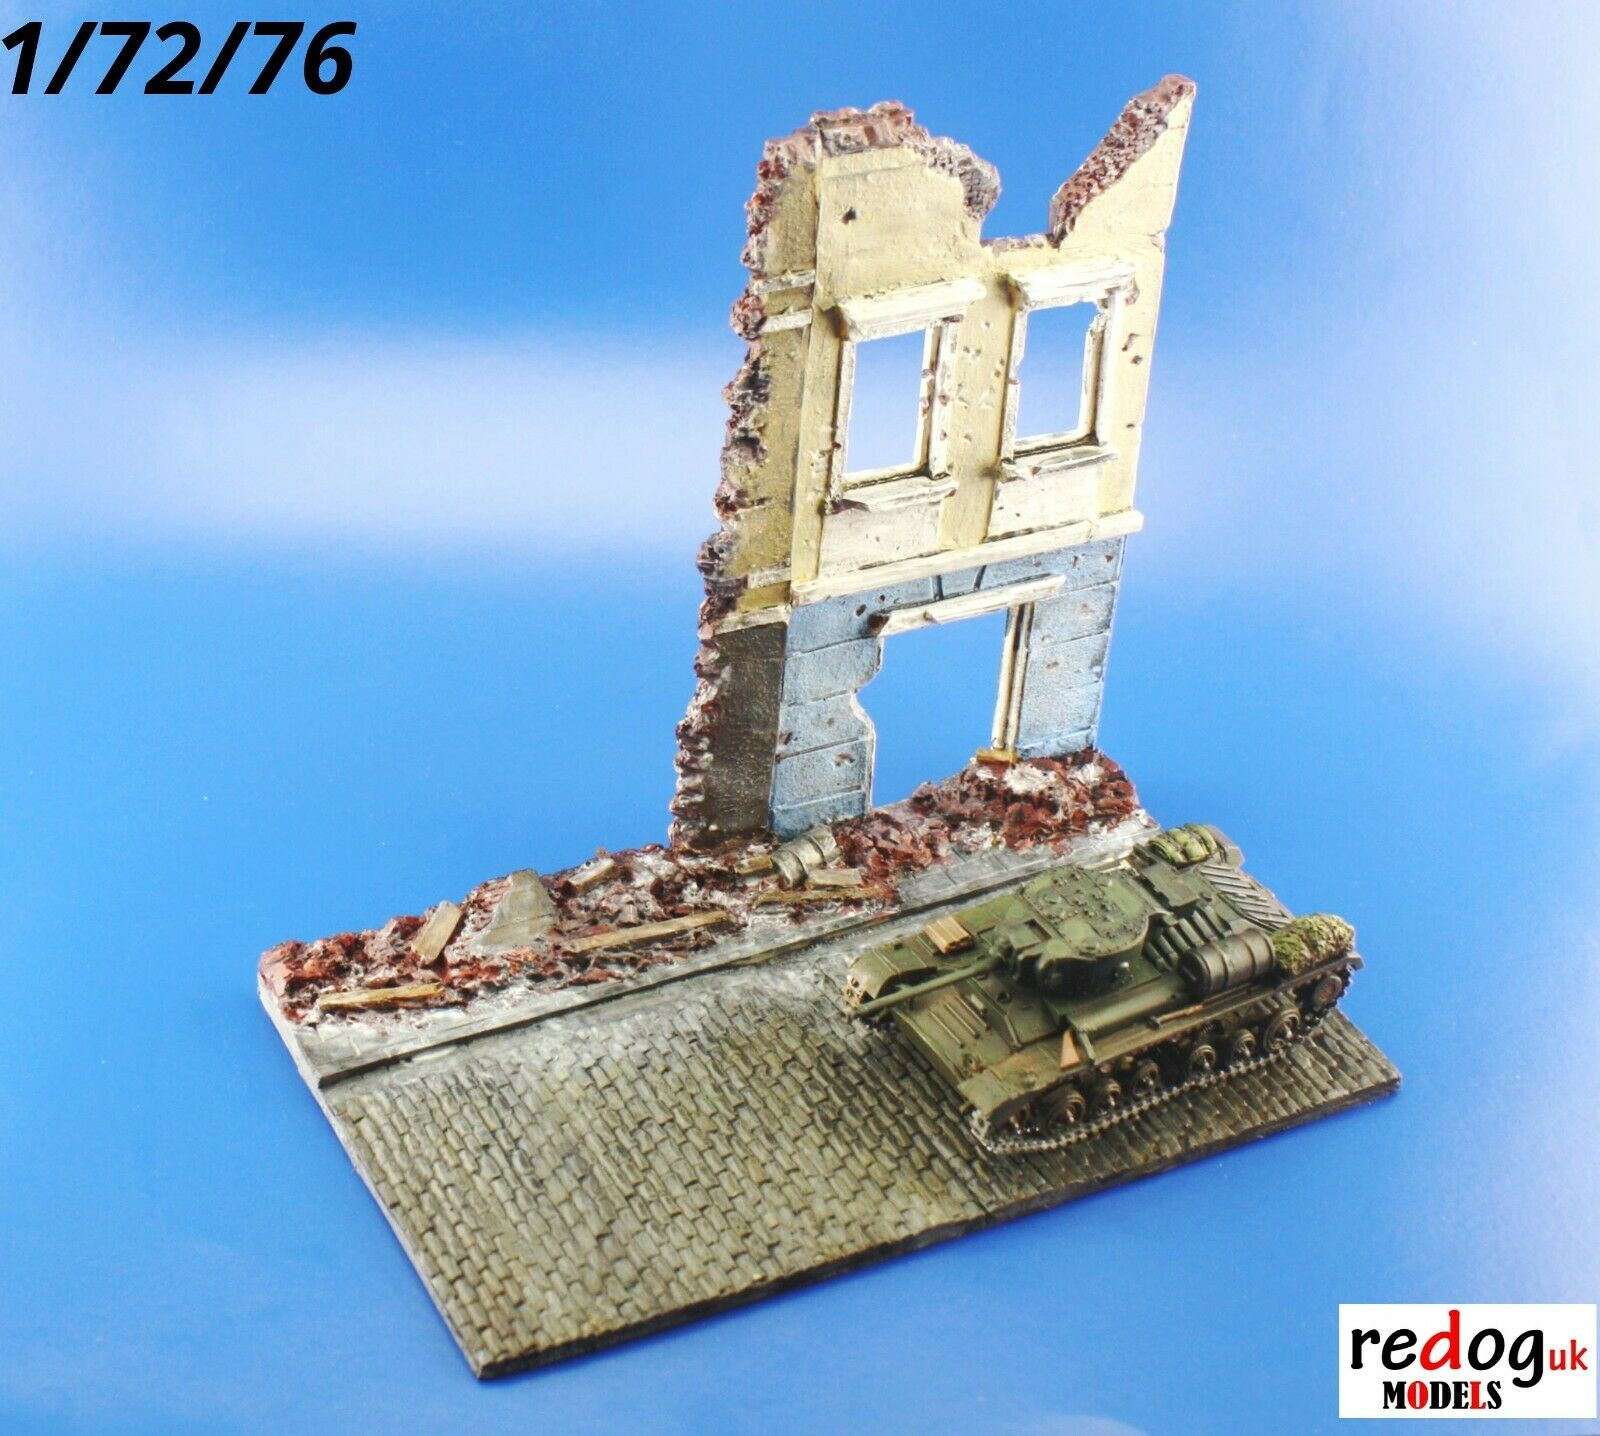 1/72 Scale Model Display Base Diorama Ruined Building /D17 - redoguk